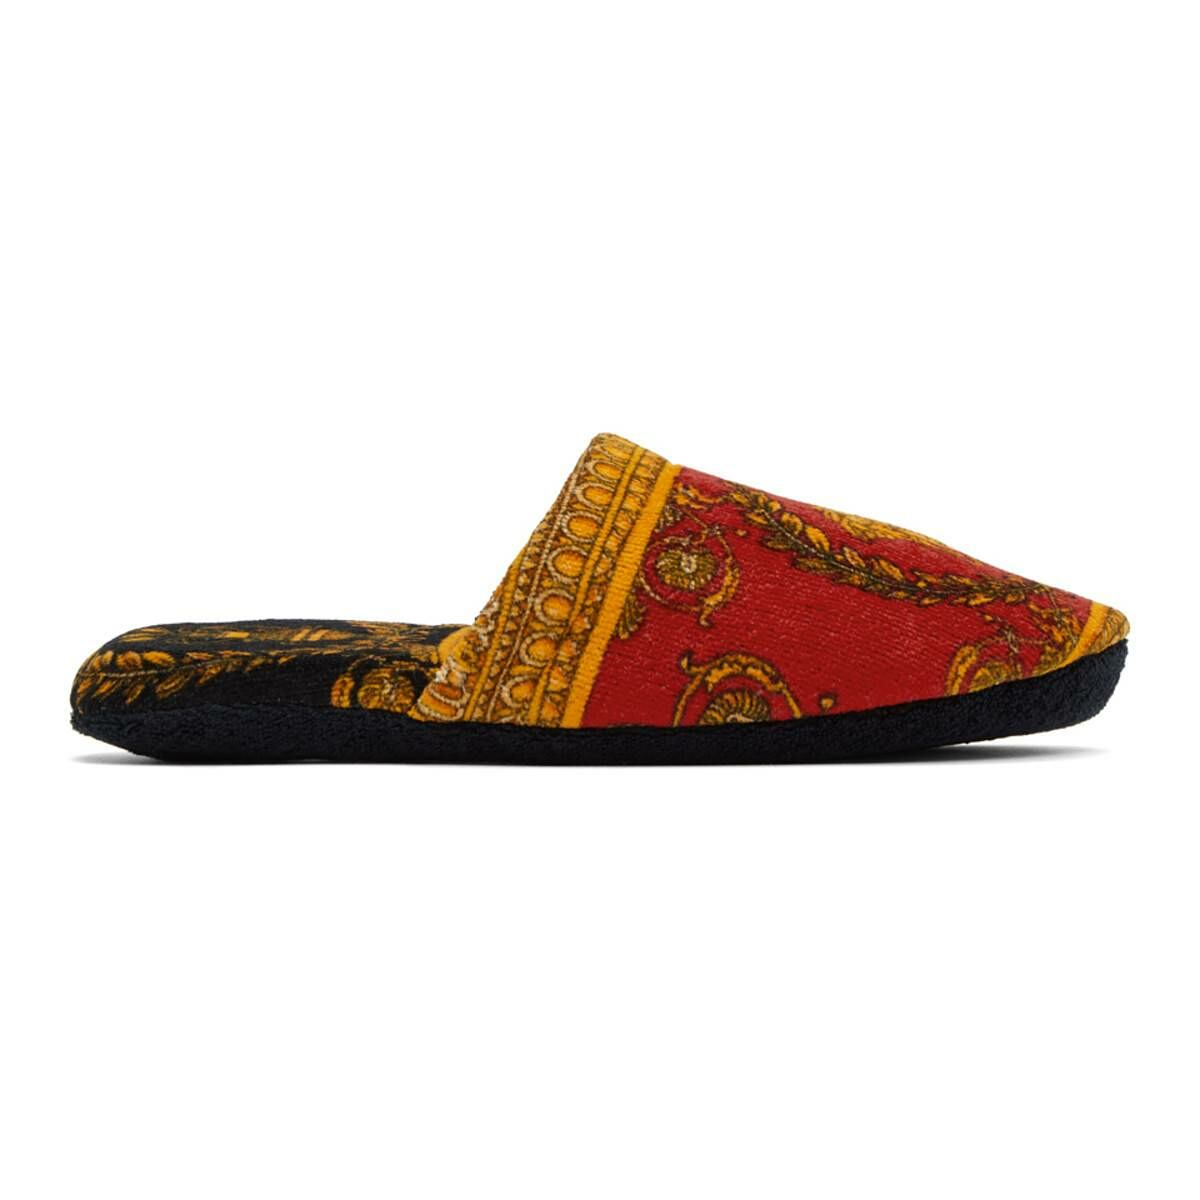 Versace Red Baroque Slippers Ssense USA MEN Men SHOES Mens LOAFERS